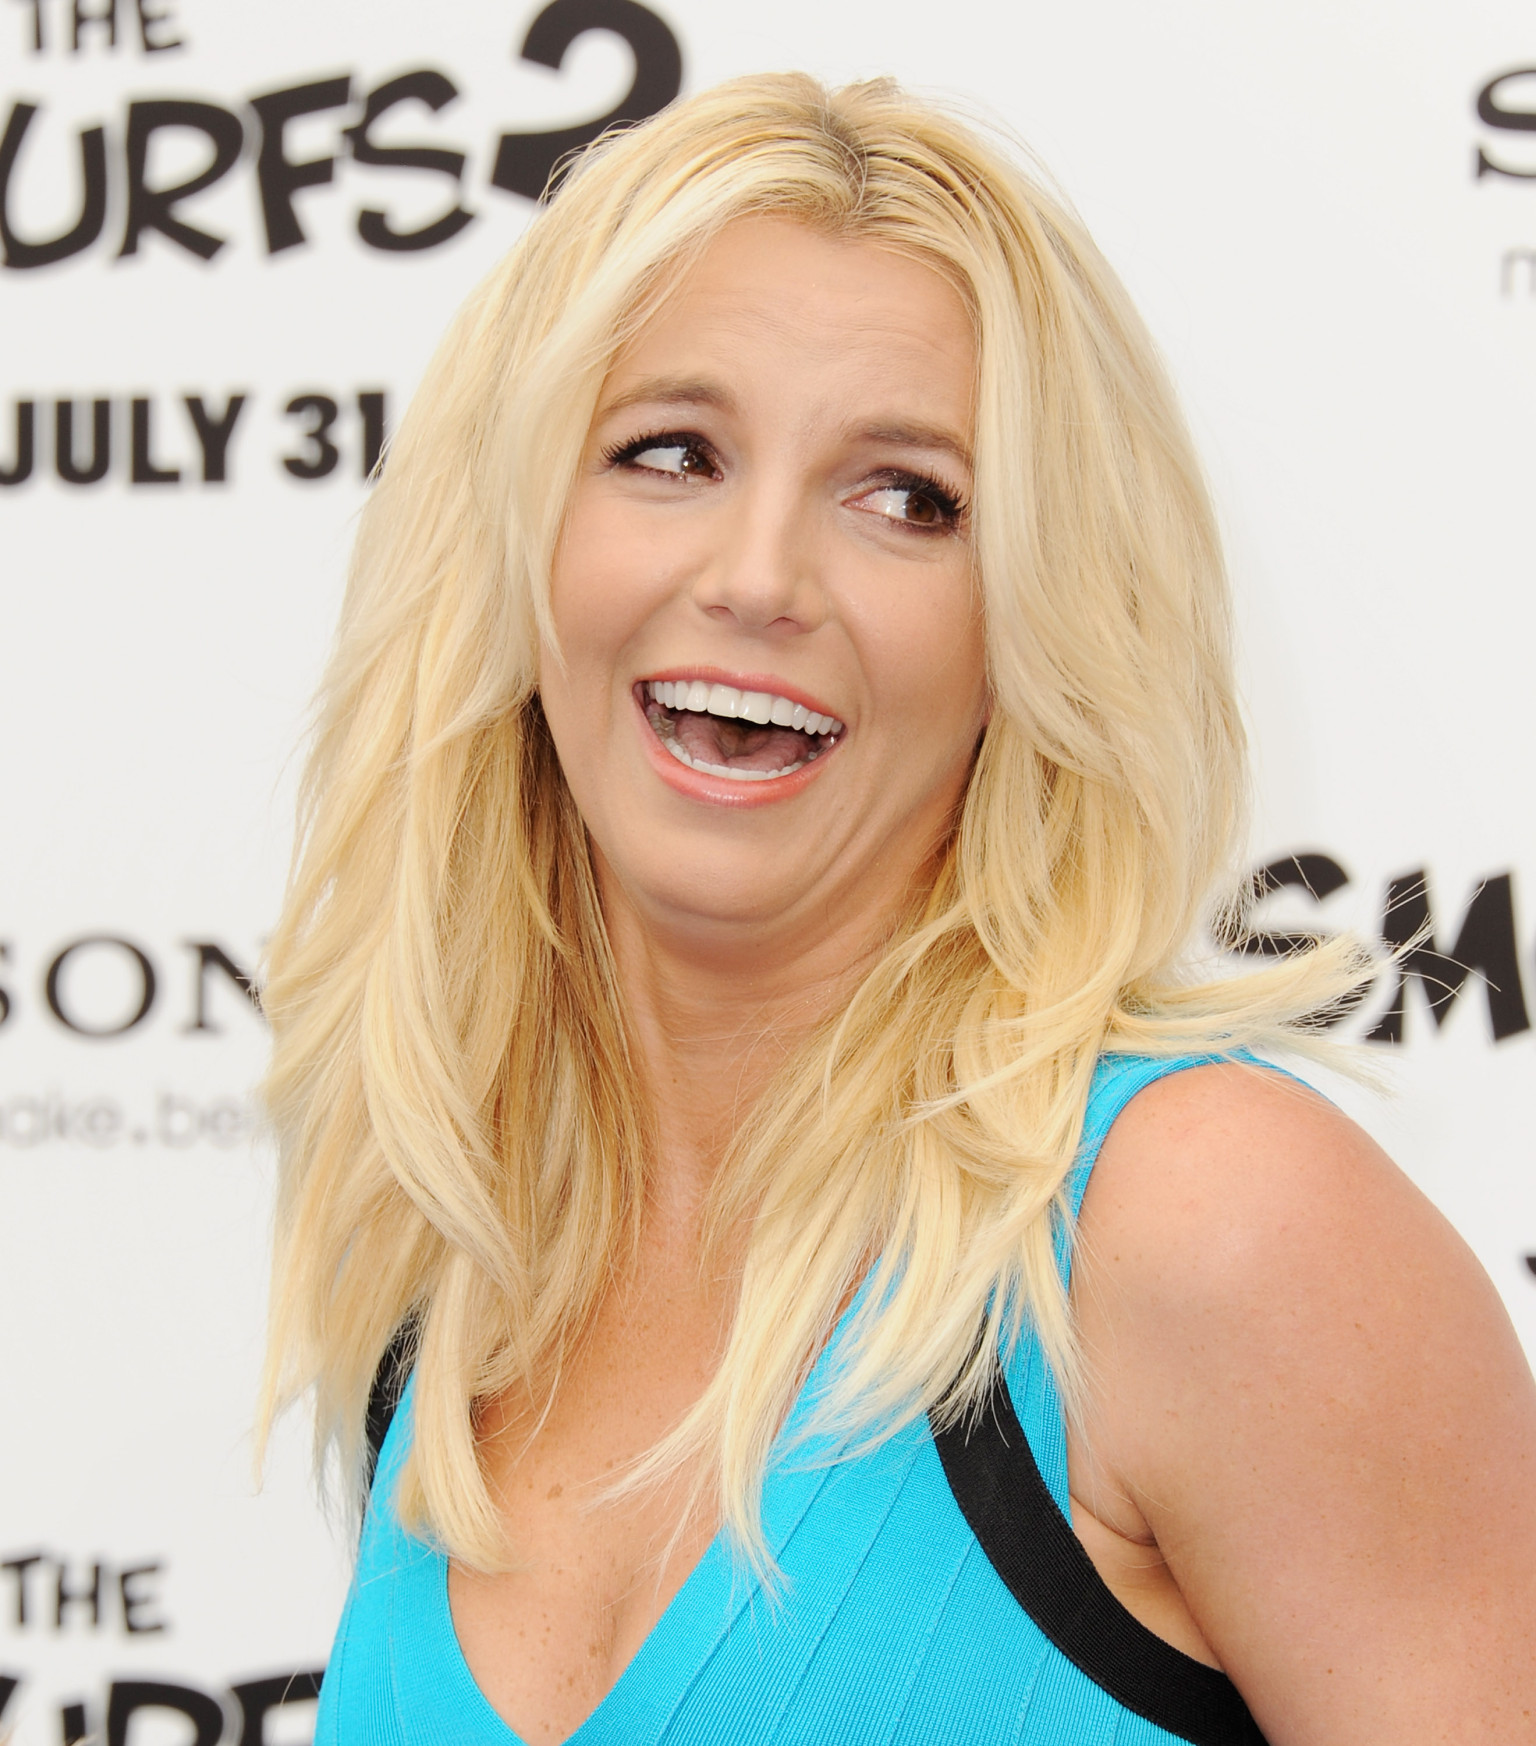 Britney Spears Funny Look 512.53 Kb